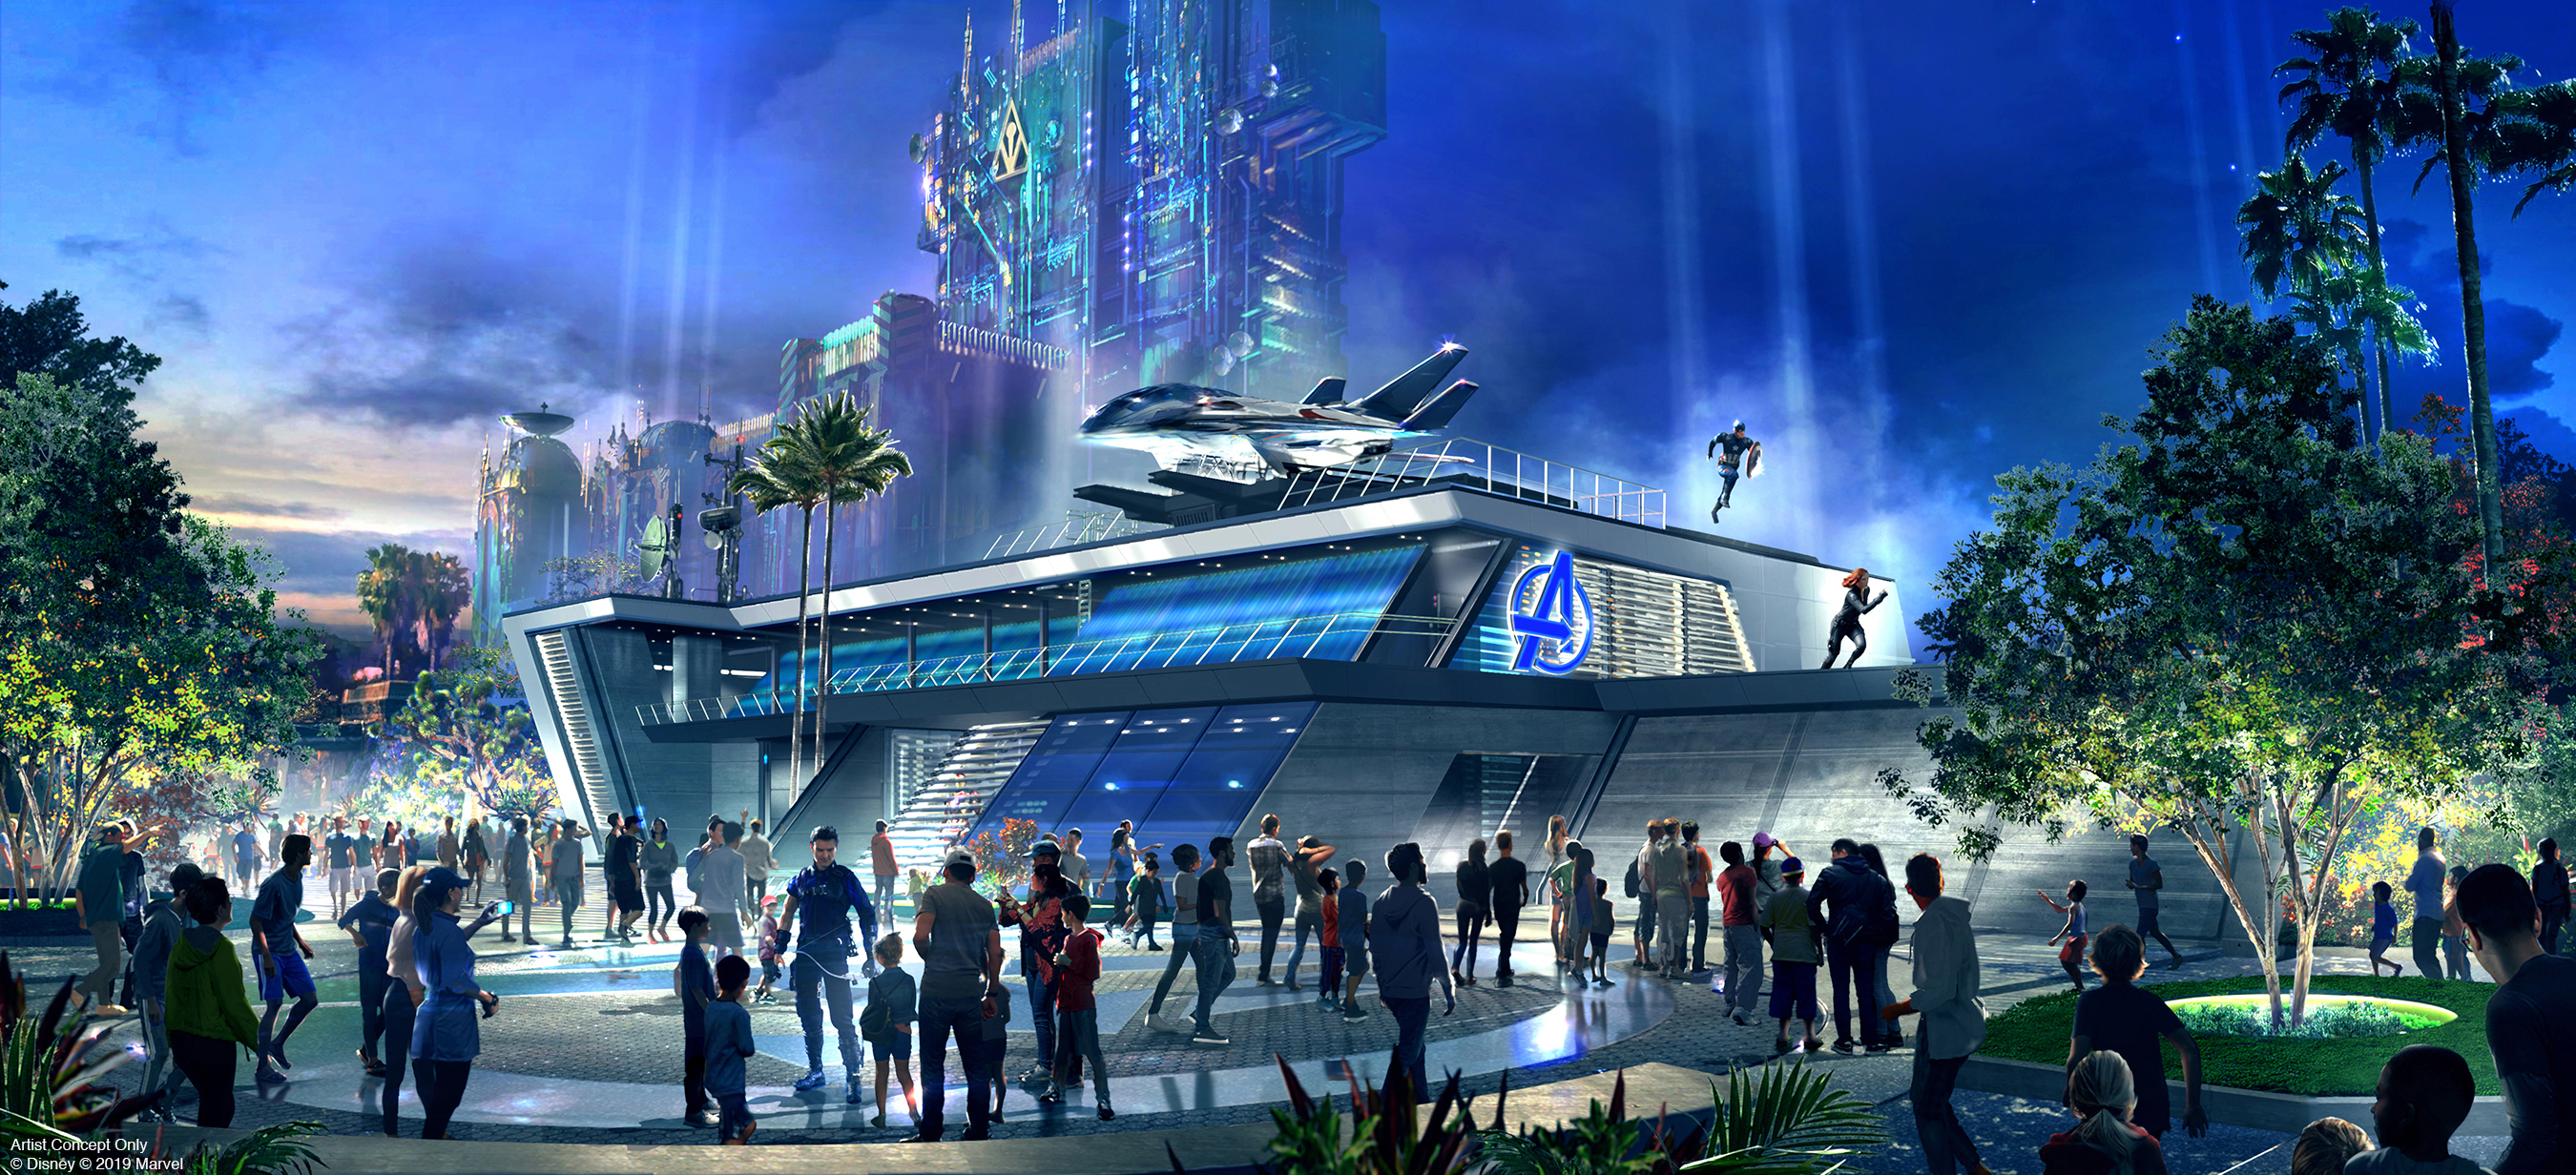 Disney's Star Wars hotel is a cruise ship in space | CNN Travel